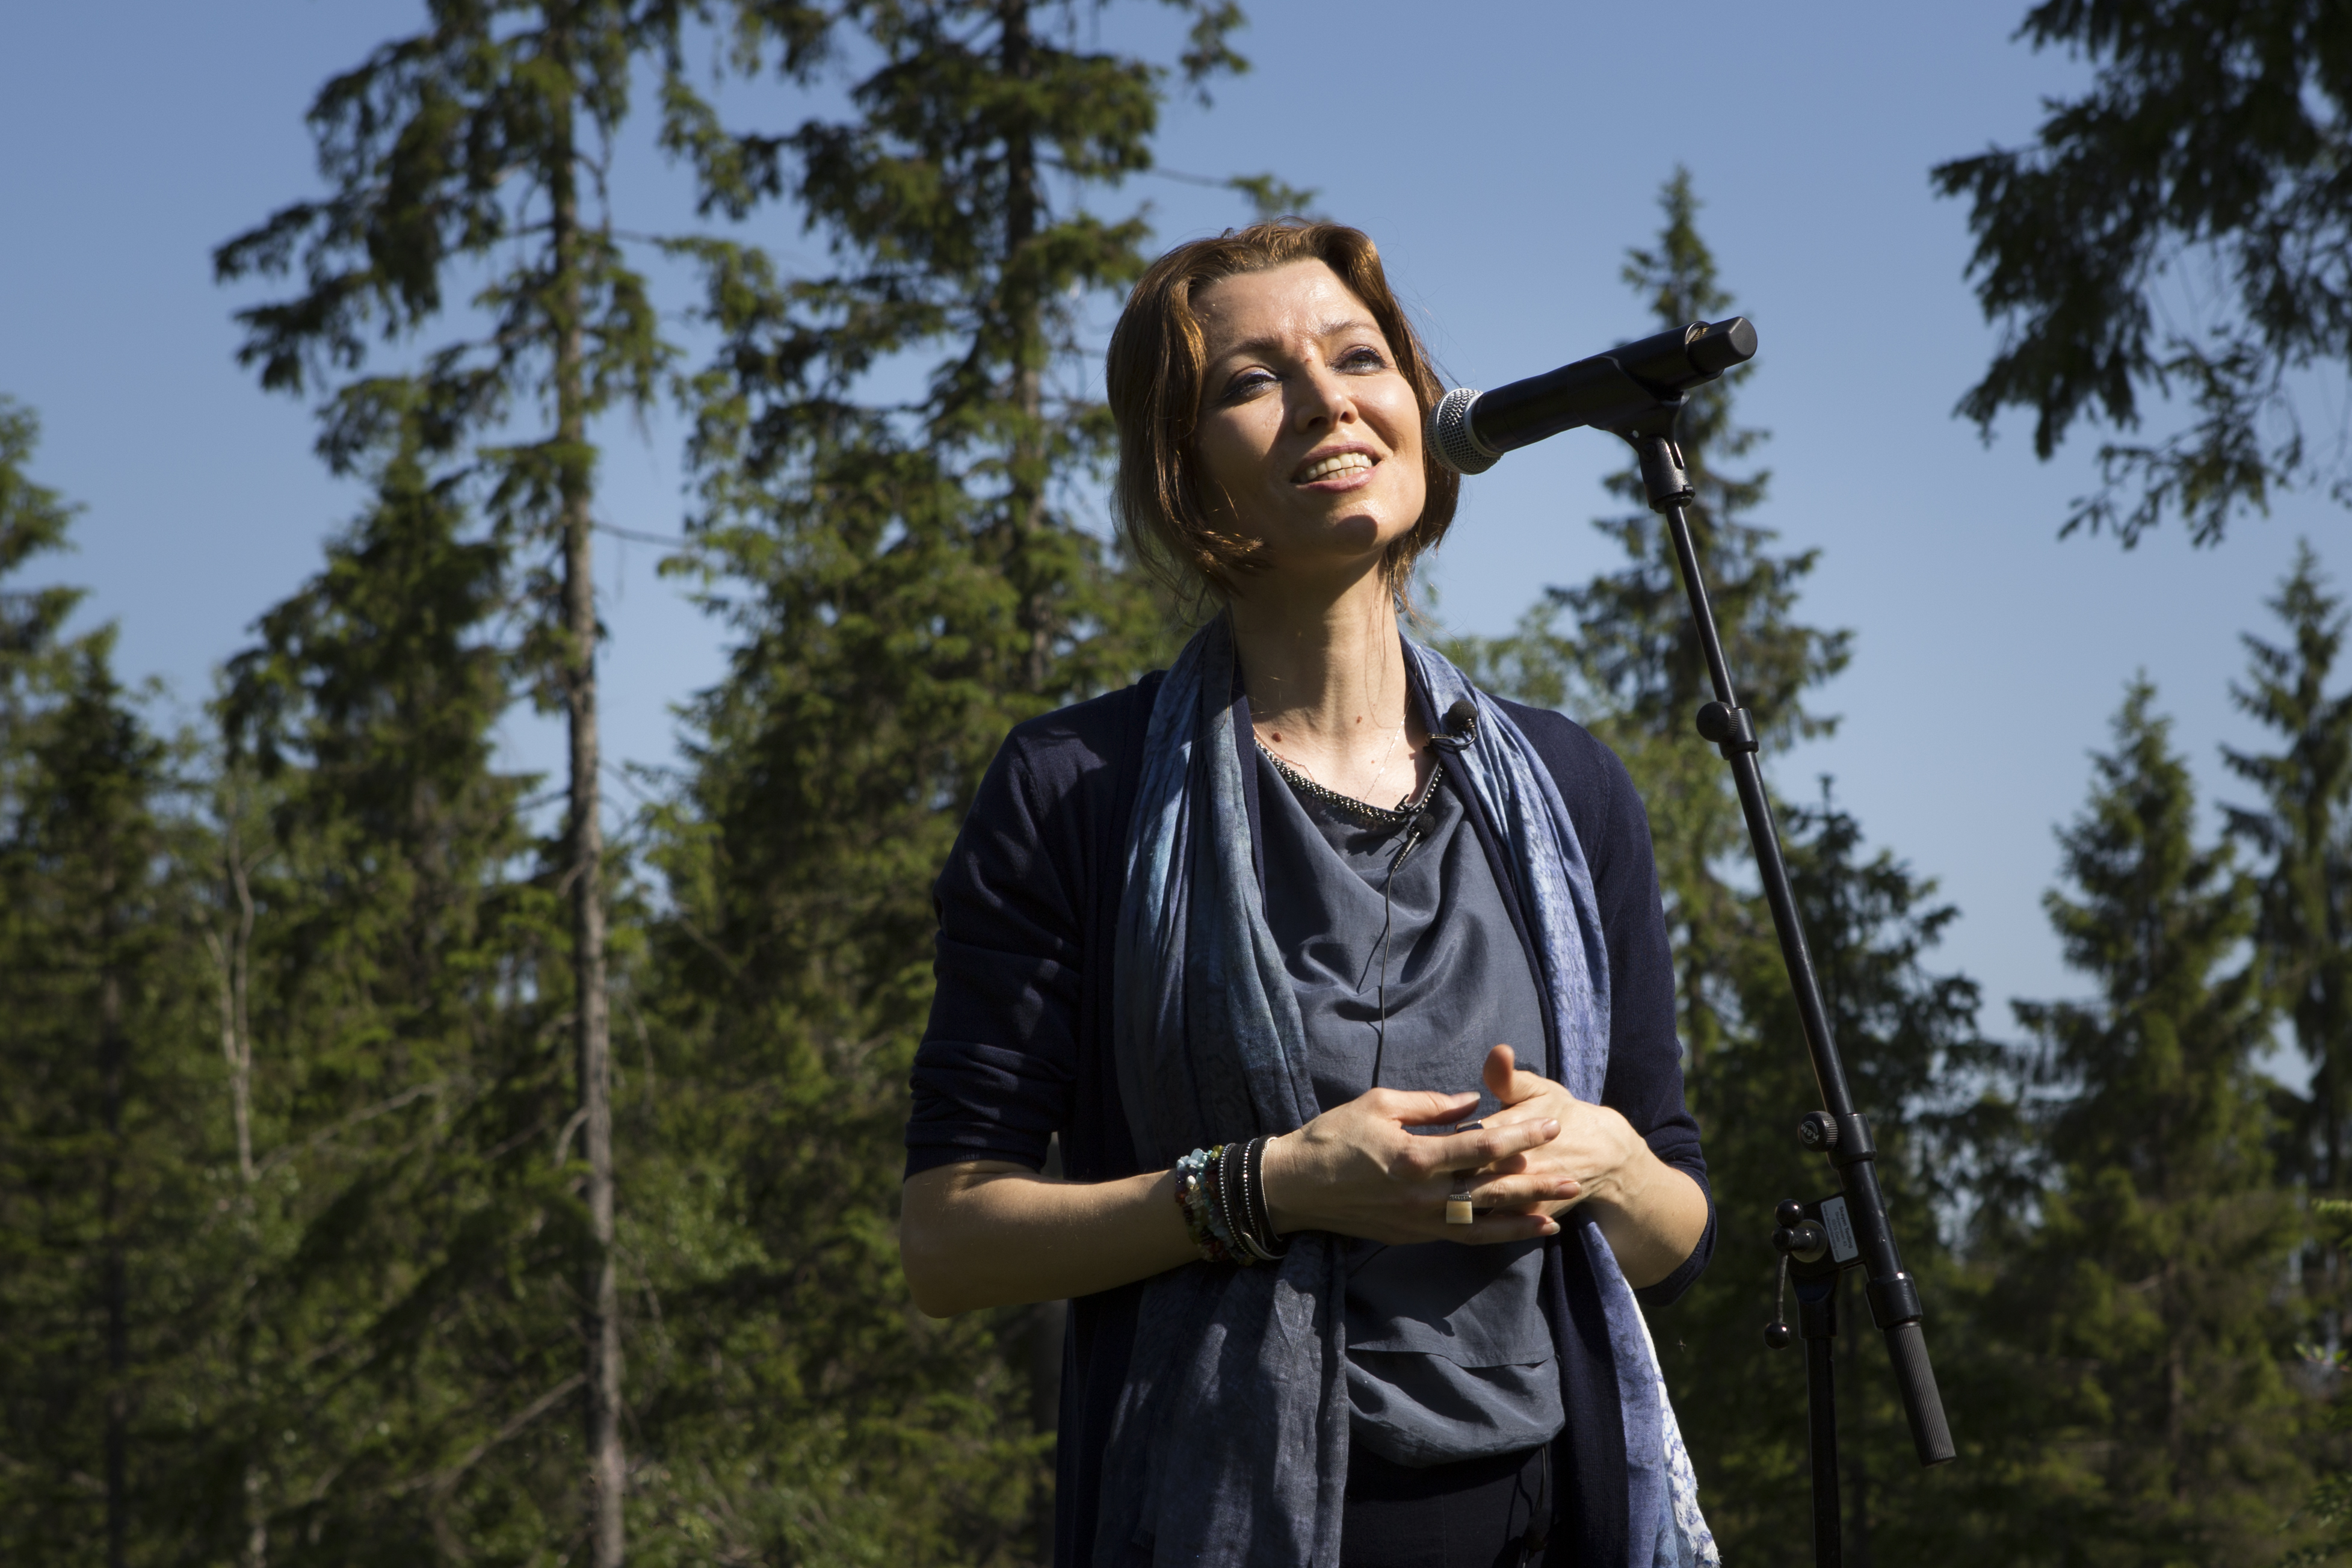 A photograph of the writer Elif Shafak at Future Library Handover Day, pictured outside in a forest